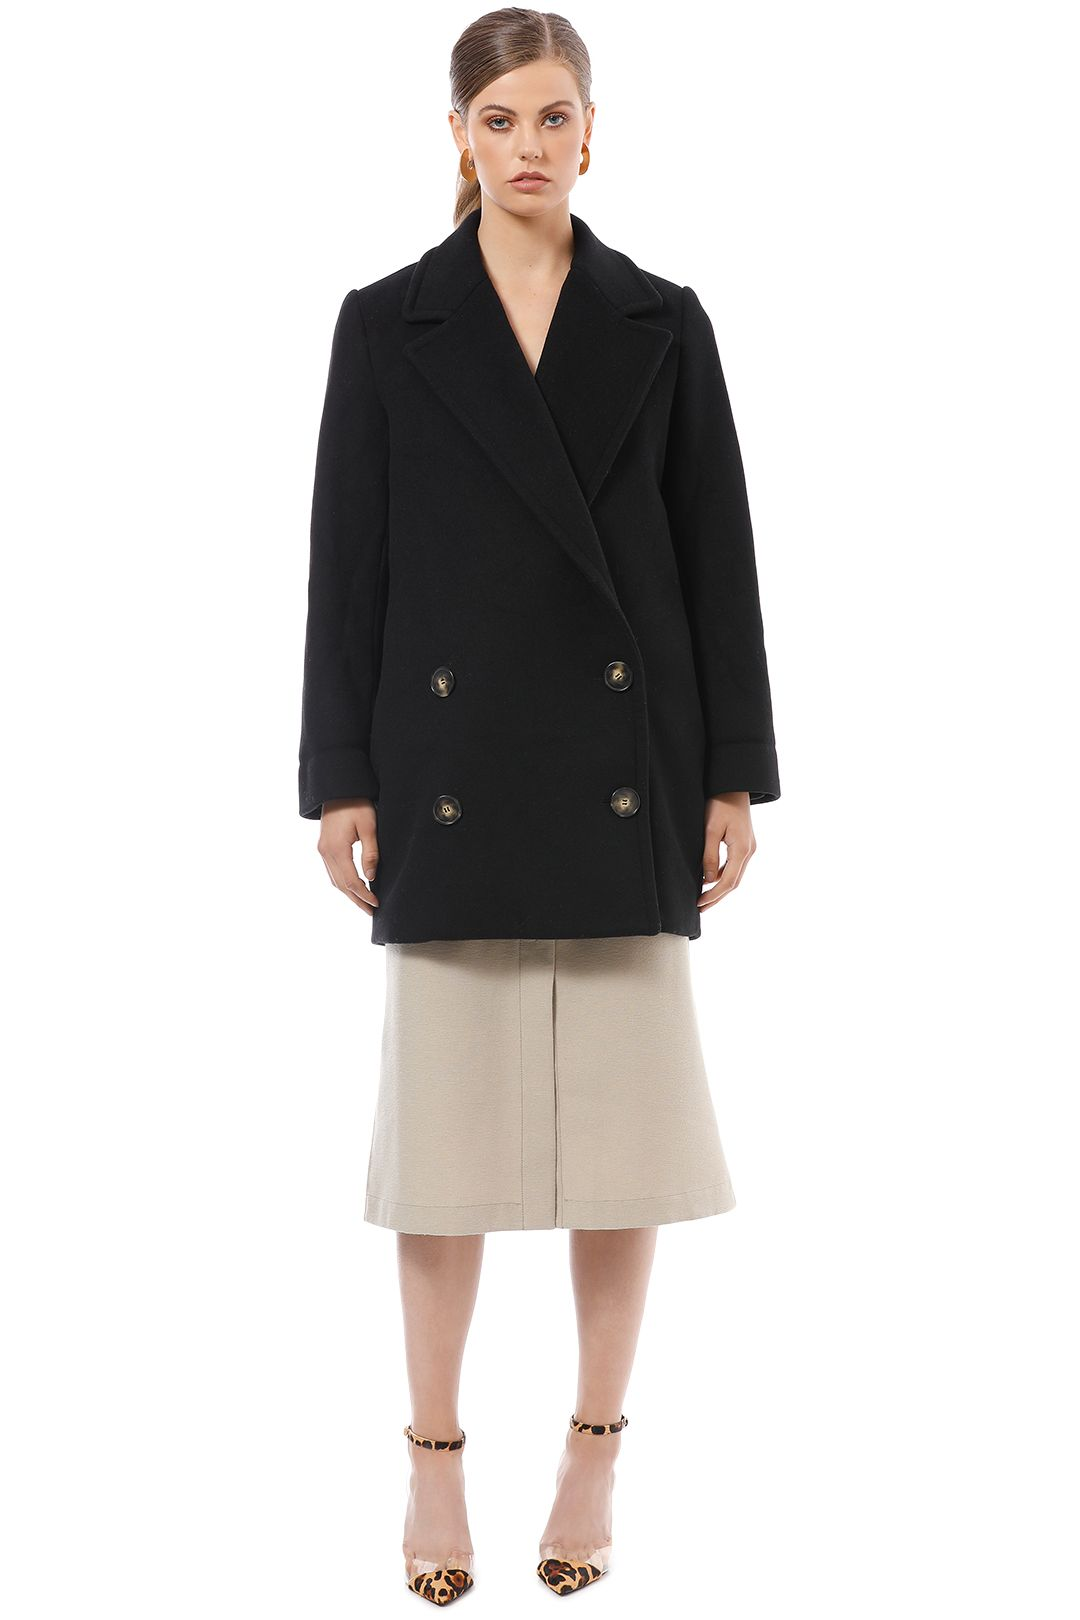 Country Road - Double Breasted Coat - Black - Front